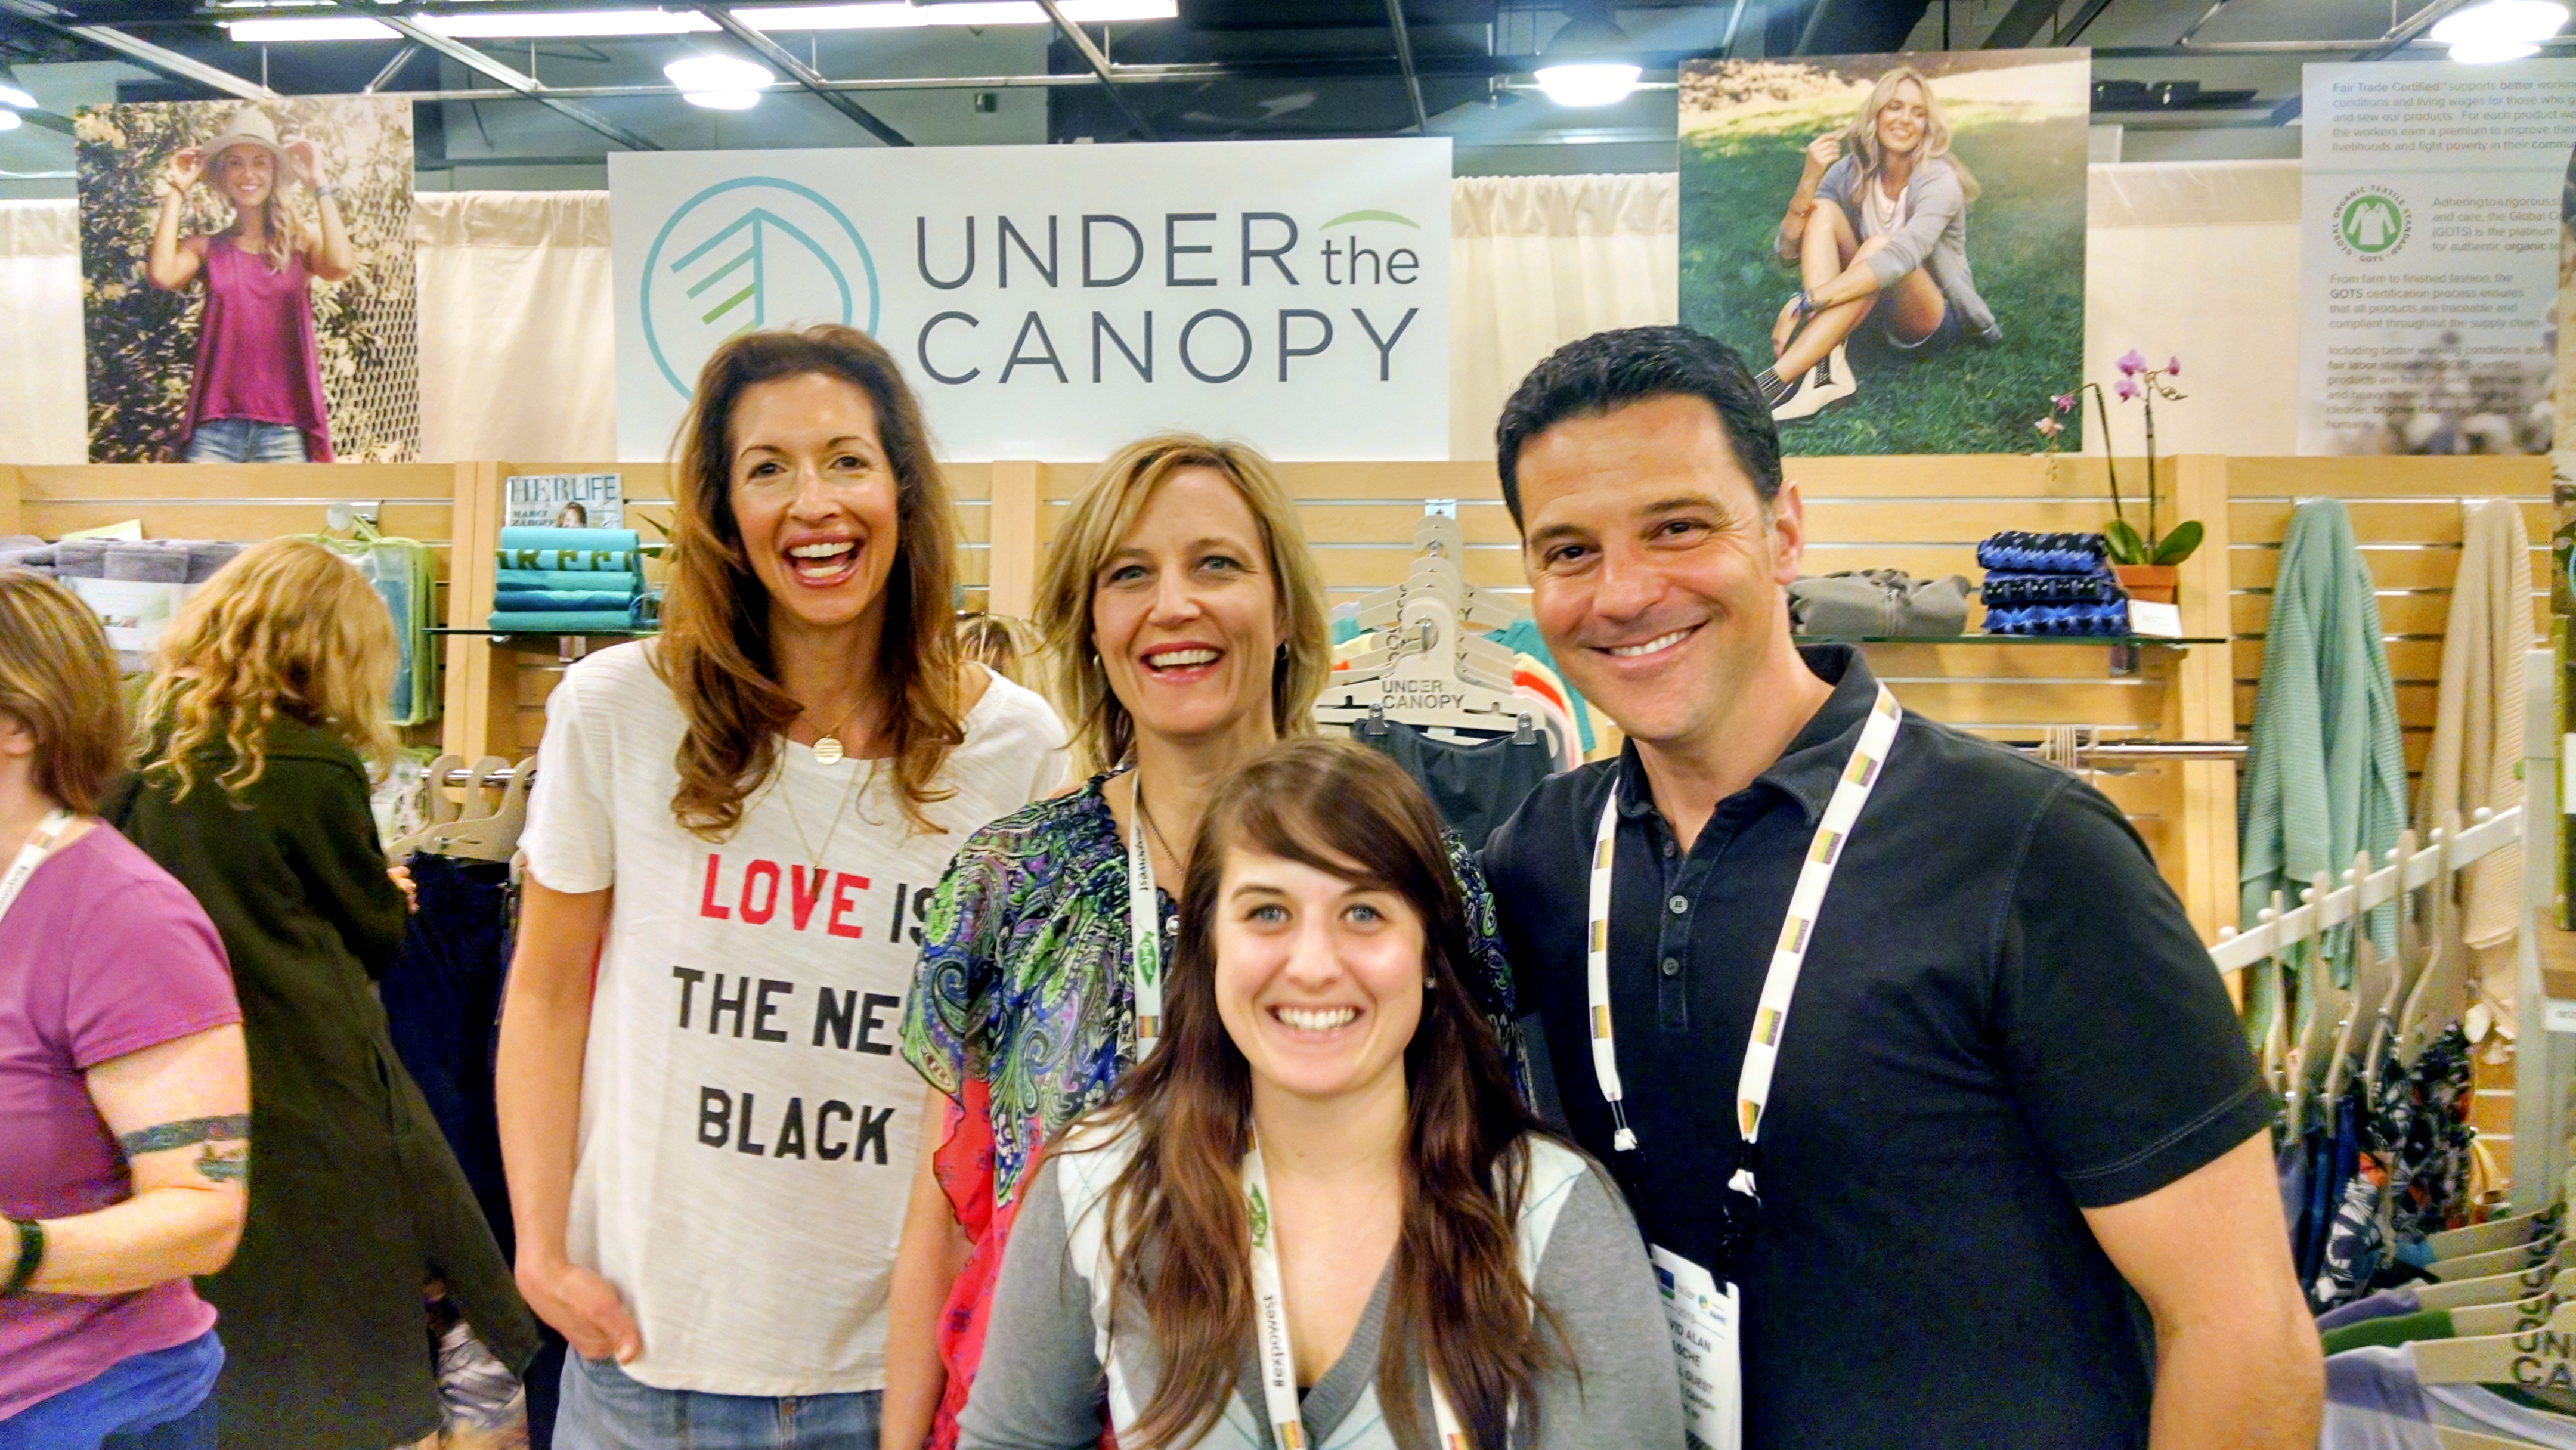 Dorie and Amanda met Alysia Reiner and her husband David Alan Basche at Natural Products Expo West